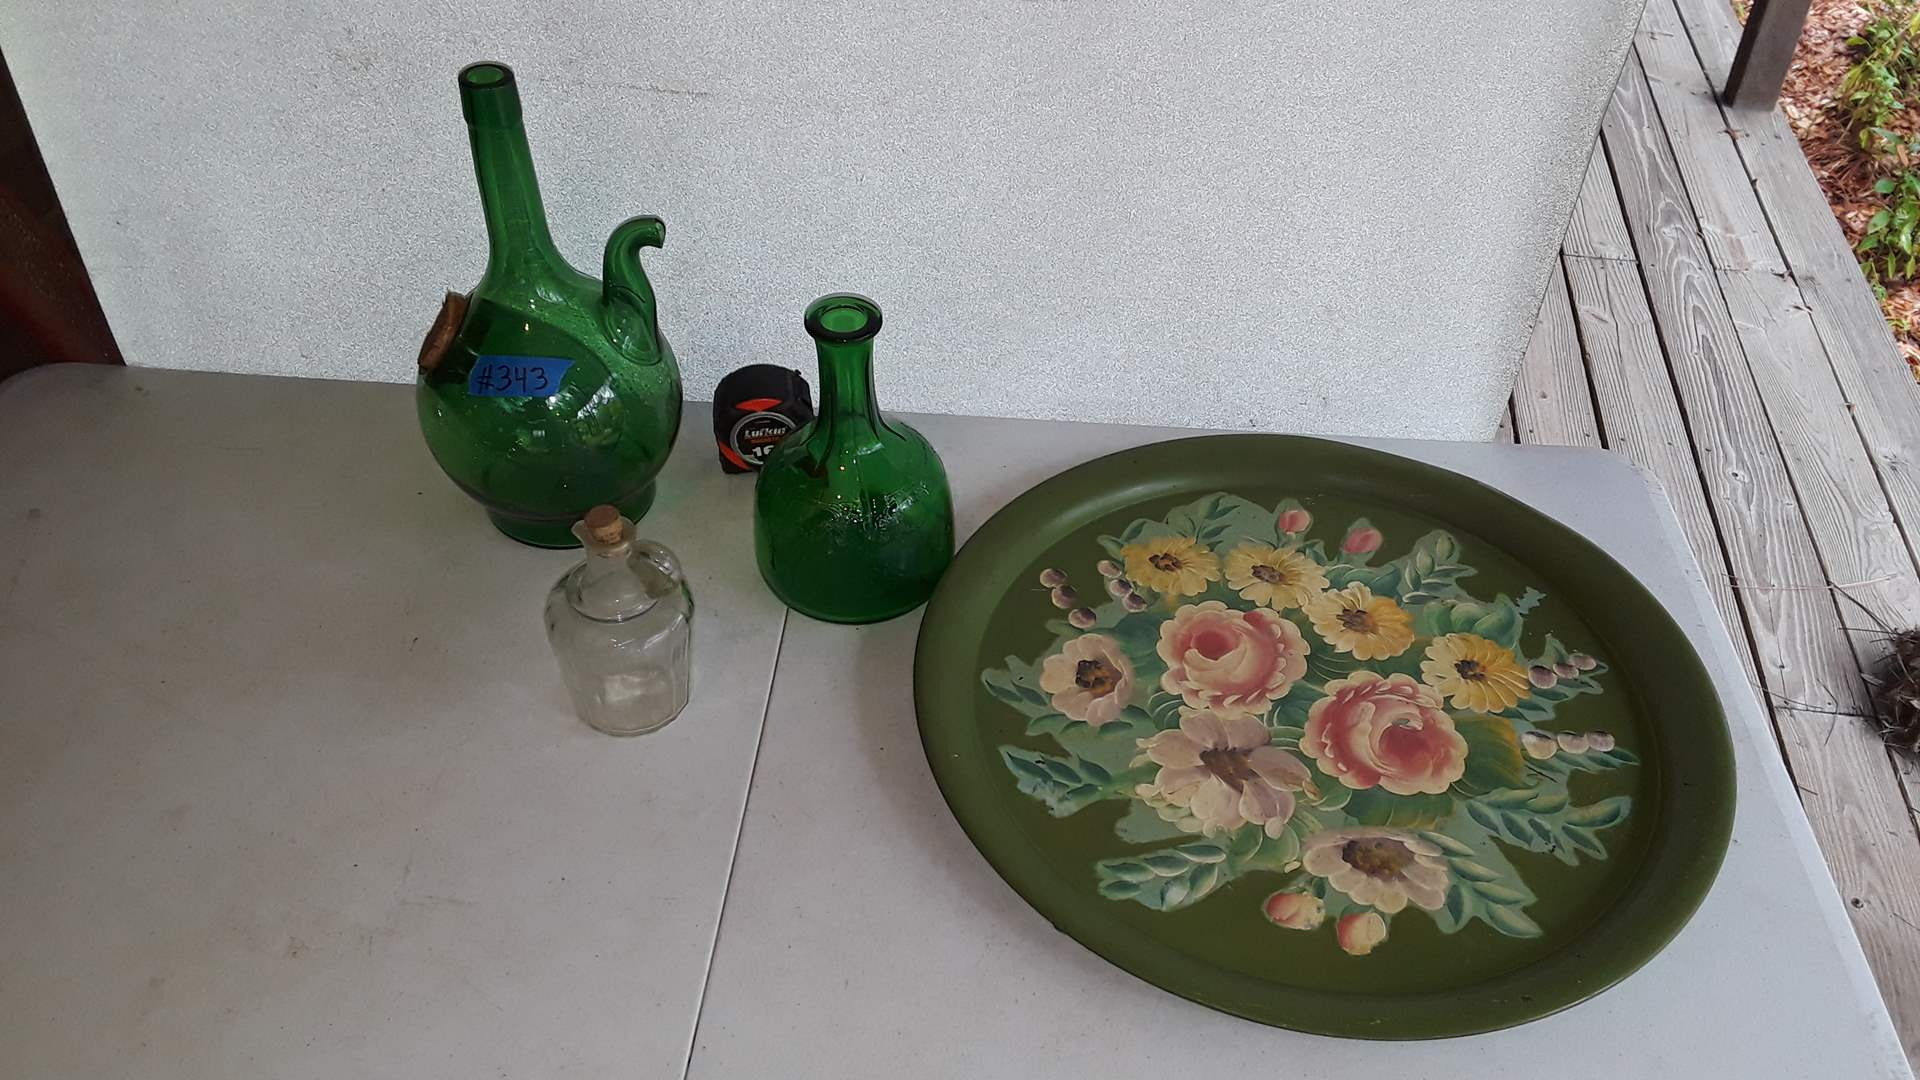 Lot # 343 ANTIQUE GREEN GLASS PITCHER WITH ICE COMPARTMENT AND HAND PAINTED METAL TRAY